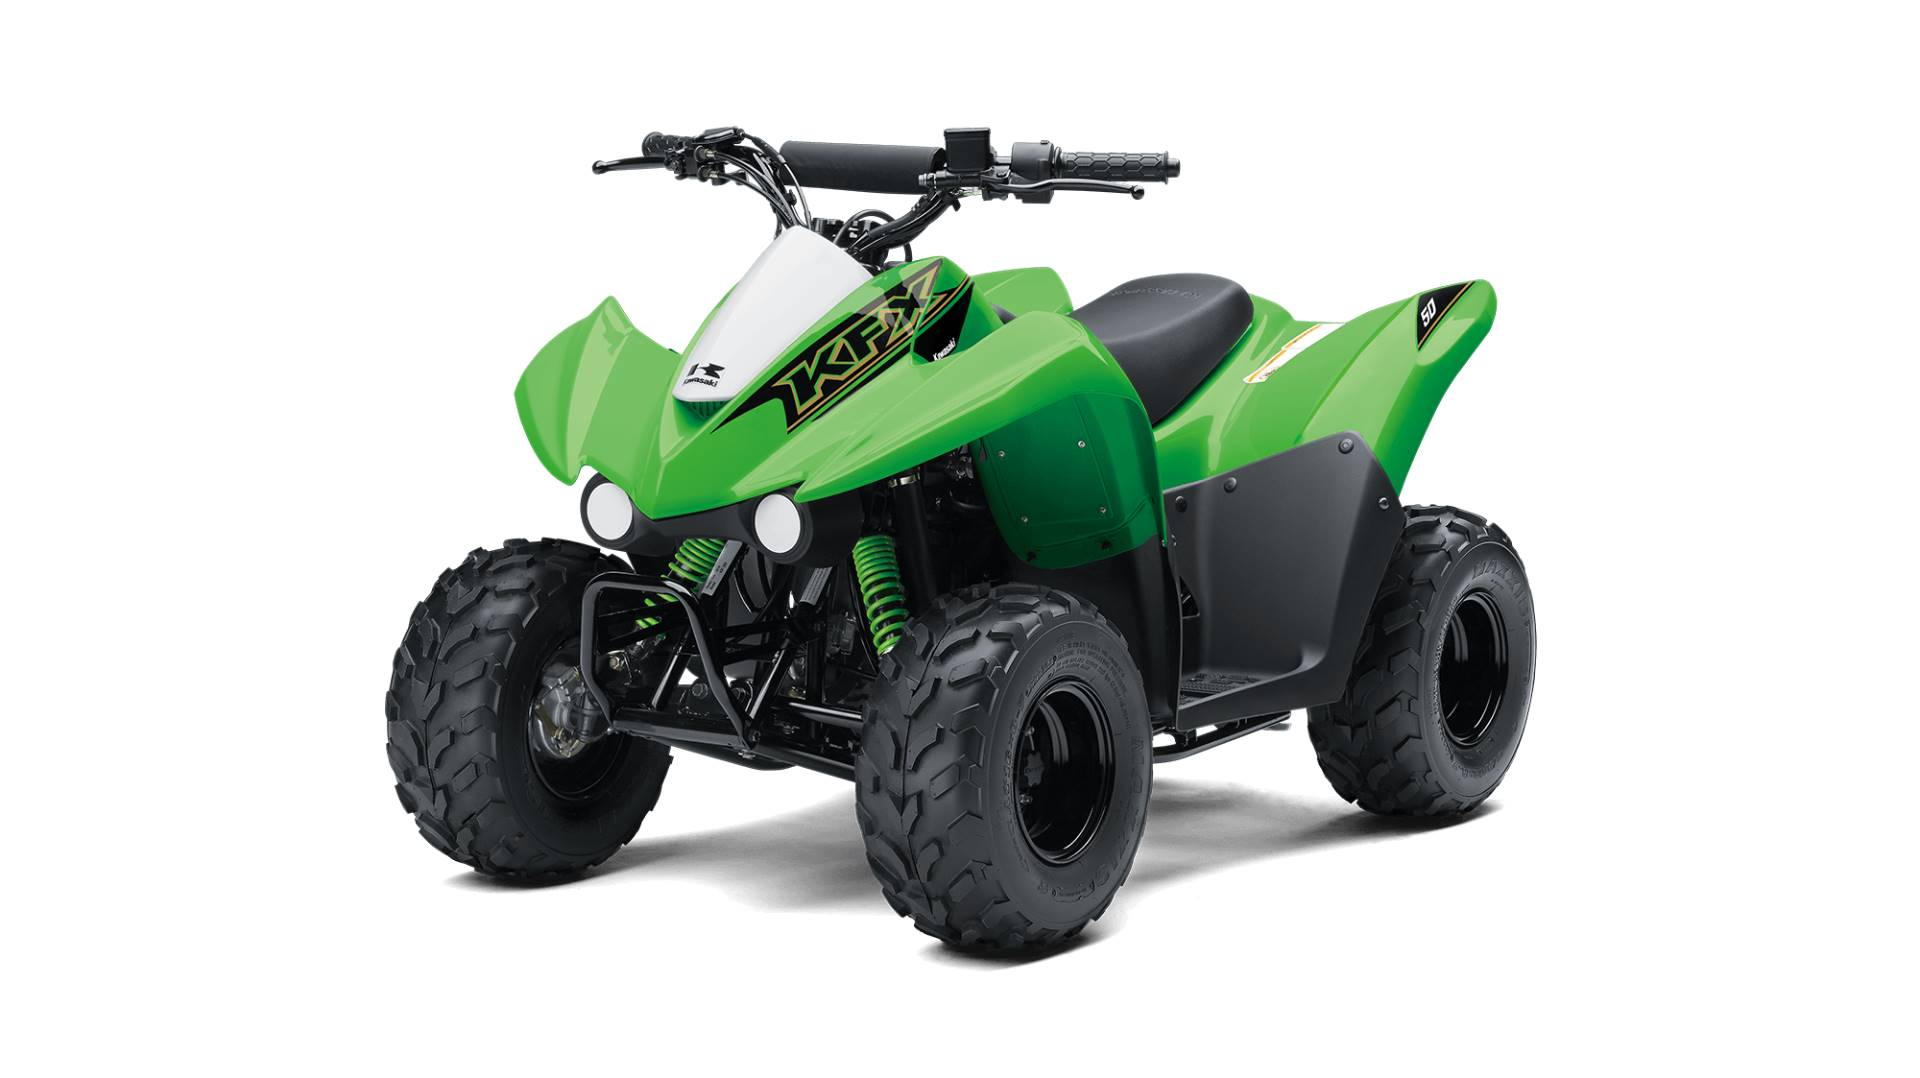 2021 Kawasaki KFX 50 in Union Gap, Washington